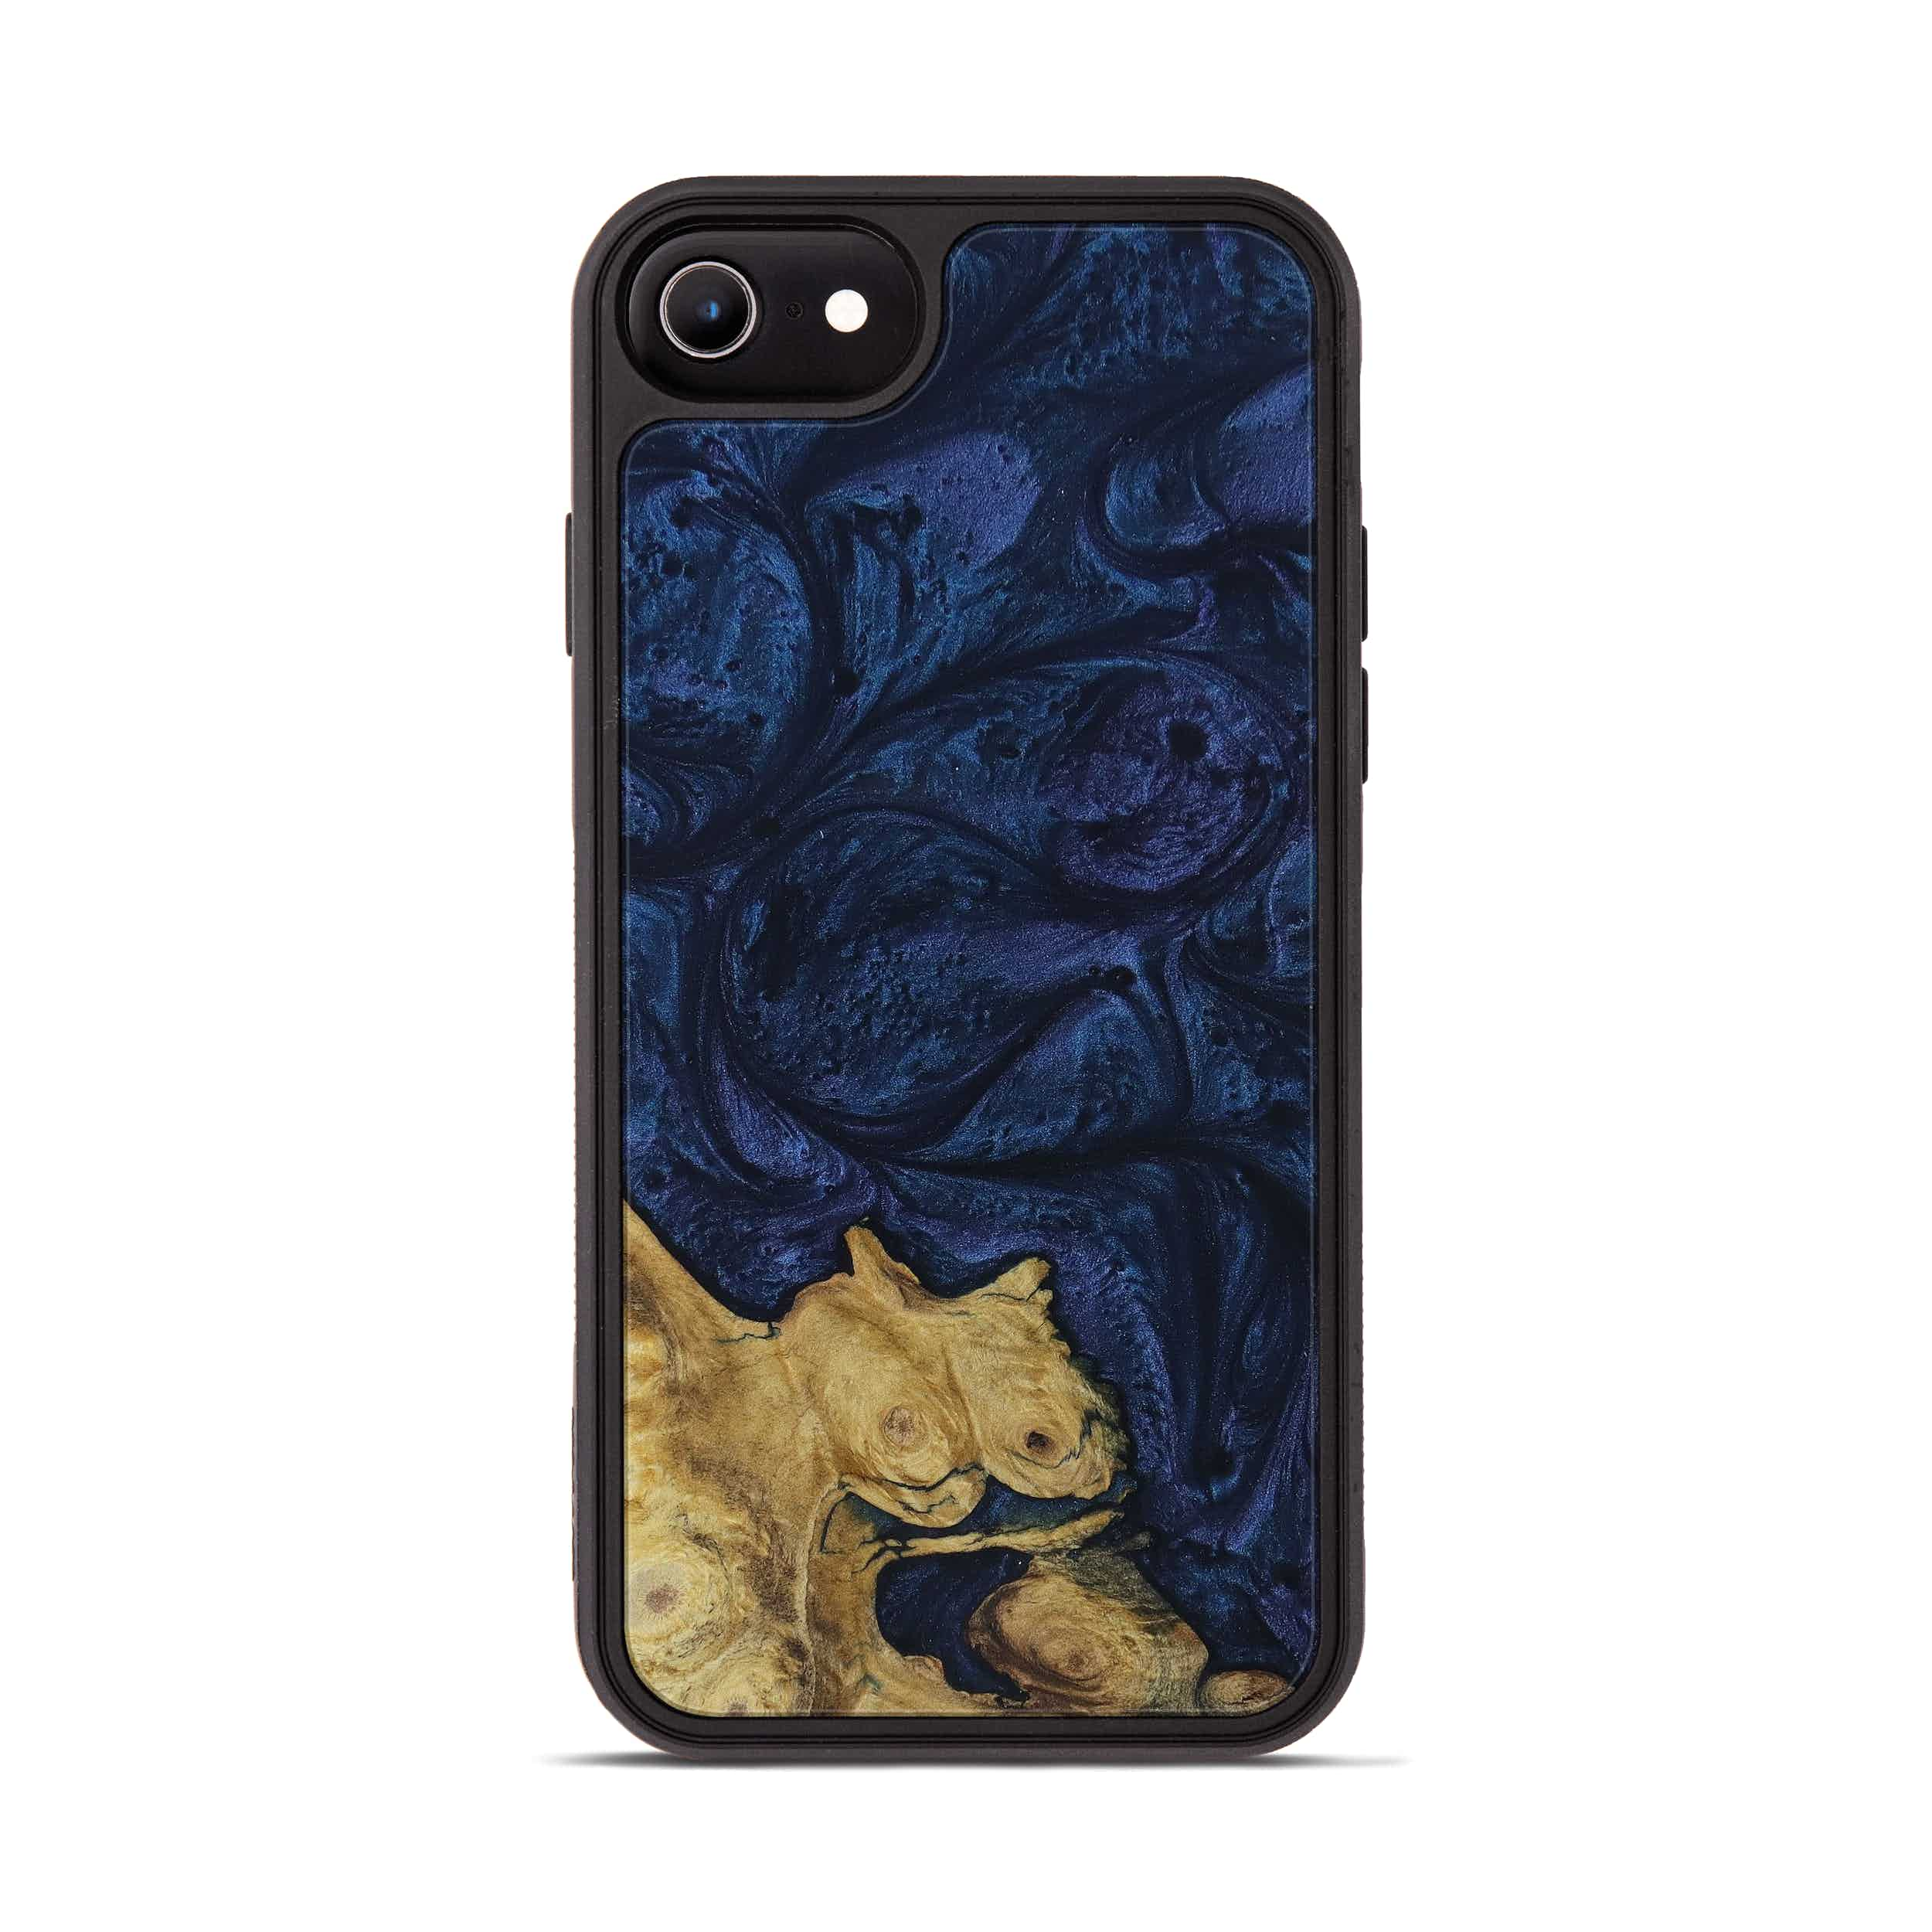 iPhone 6s Wood+Resin Phone Case - Ginelle (Dark Blue, 397408)